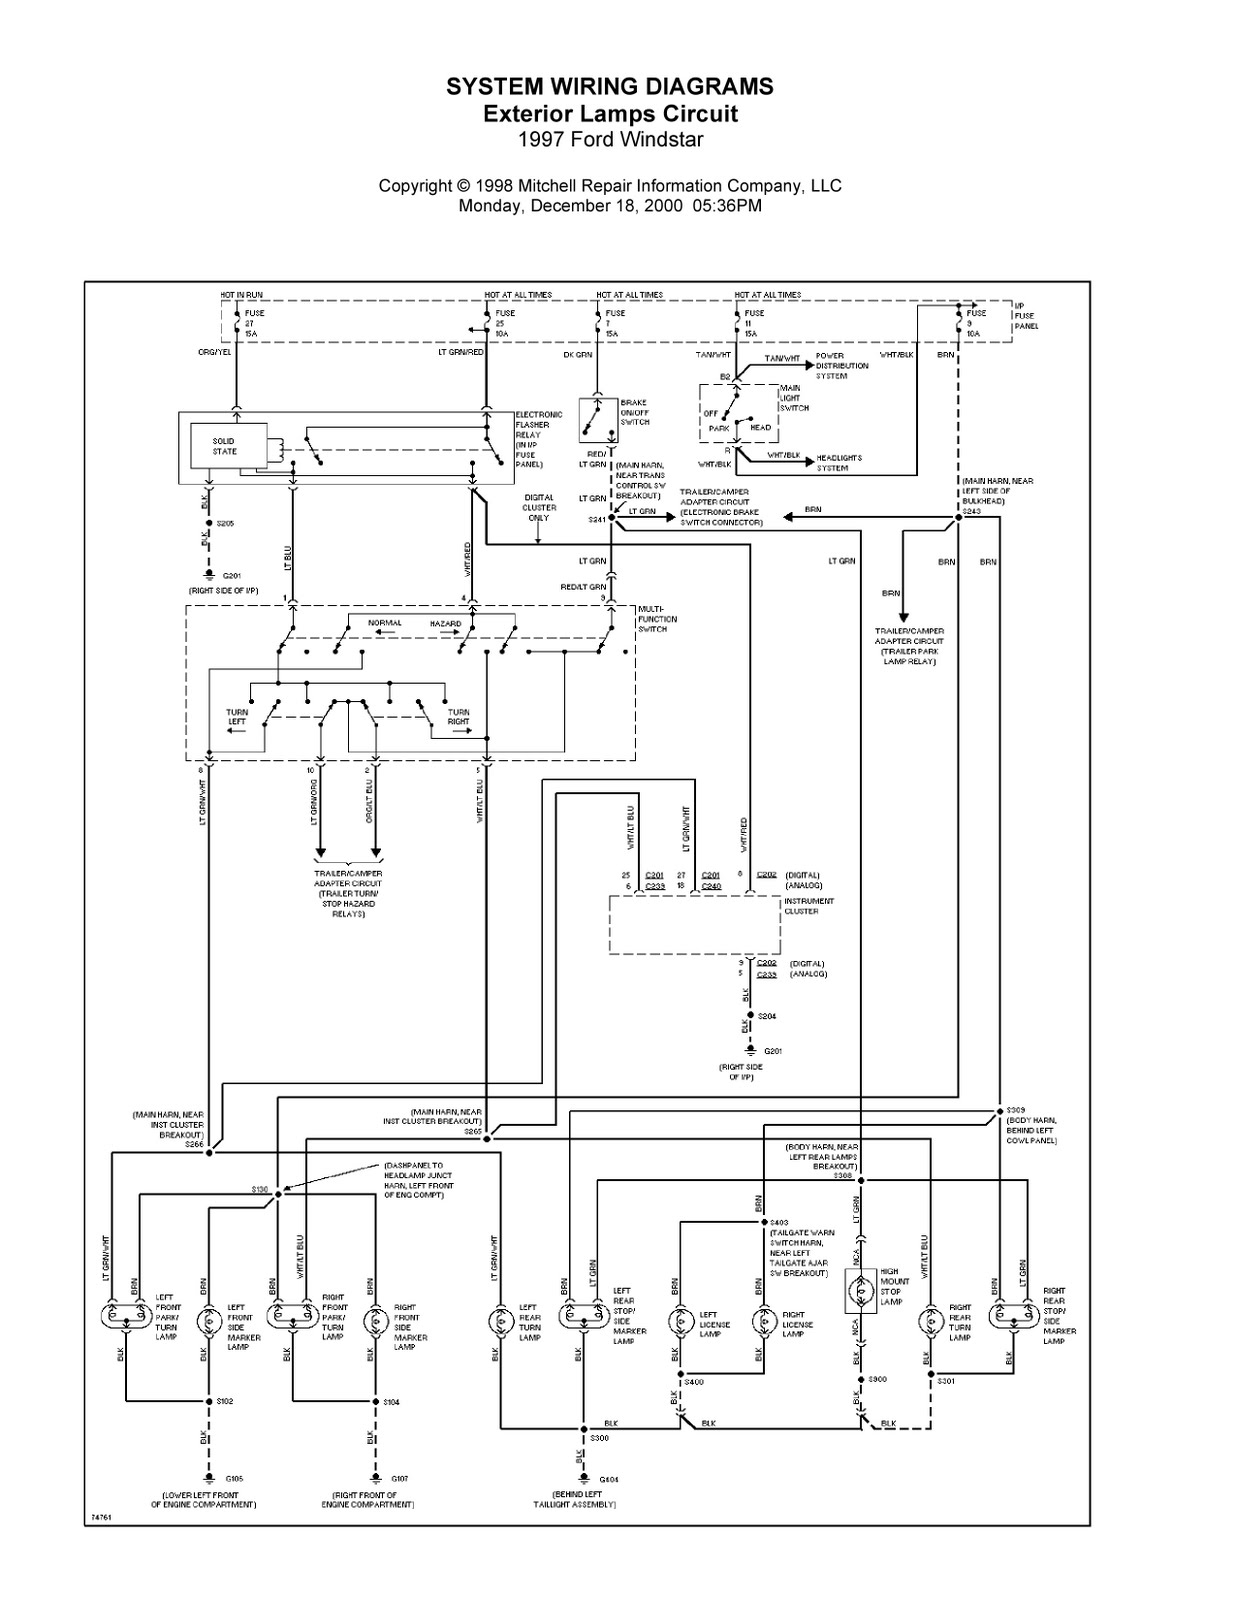 hight resolution of 1997 ford windstar complete system wiring diagrams 2000 ford windstar wiring diagram 2001 ford windstar electrical